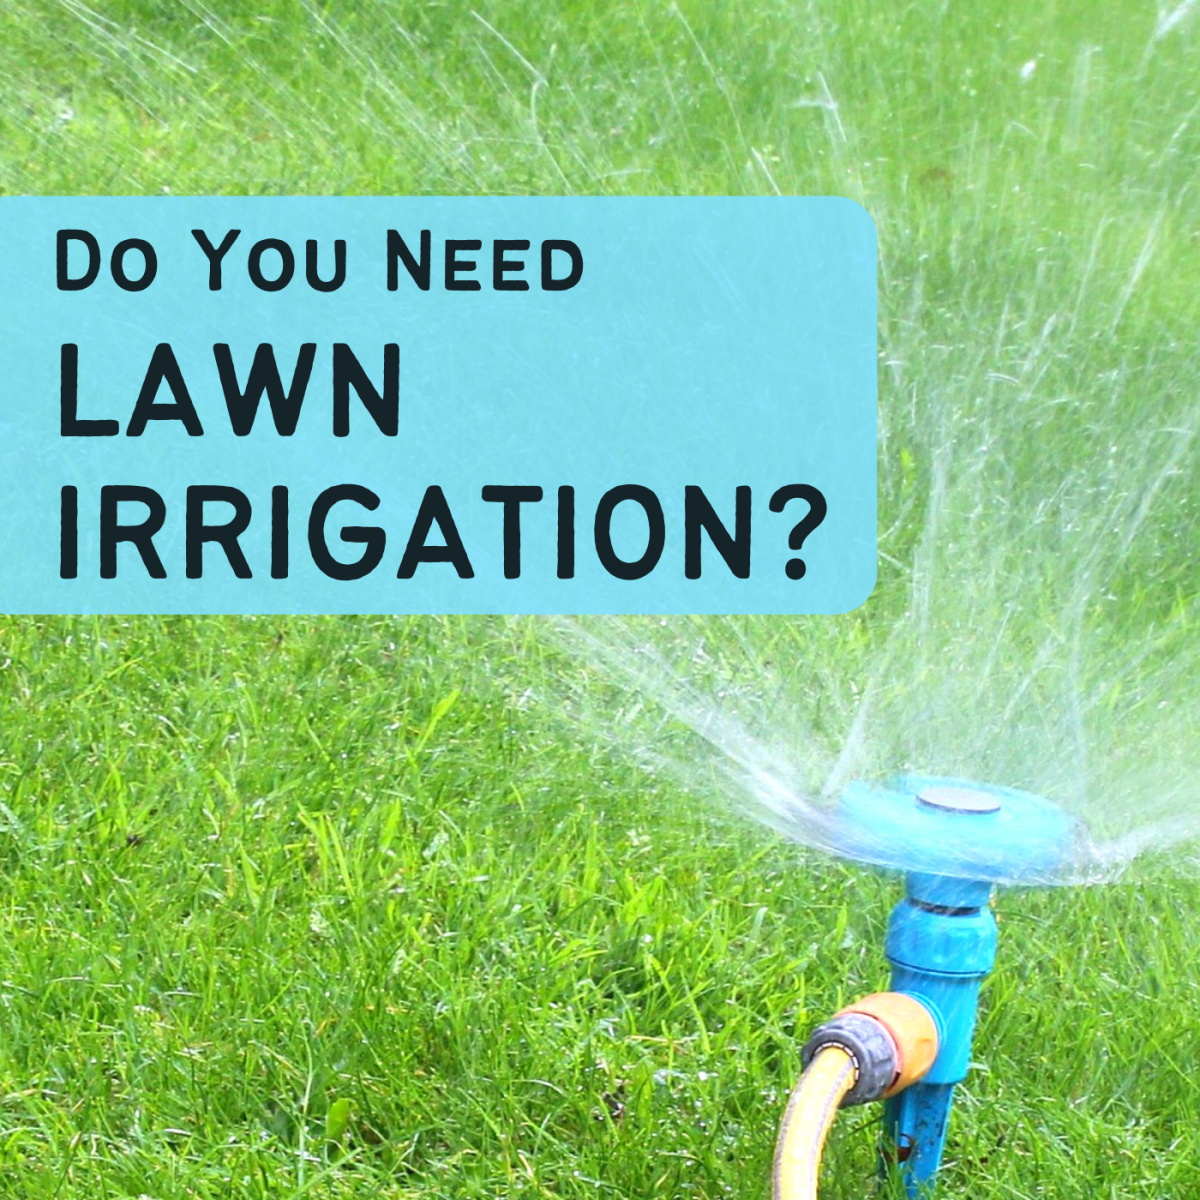 Learn about the common types of lawn irrigation and whether installing an irrigation system could benefit your yard.